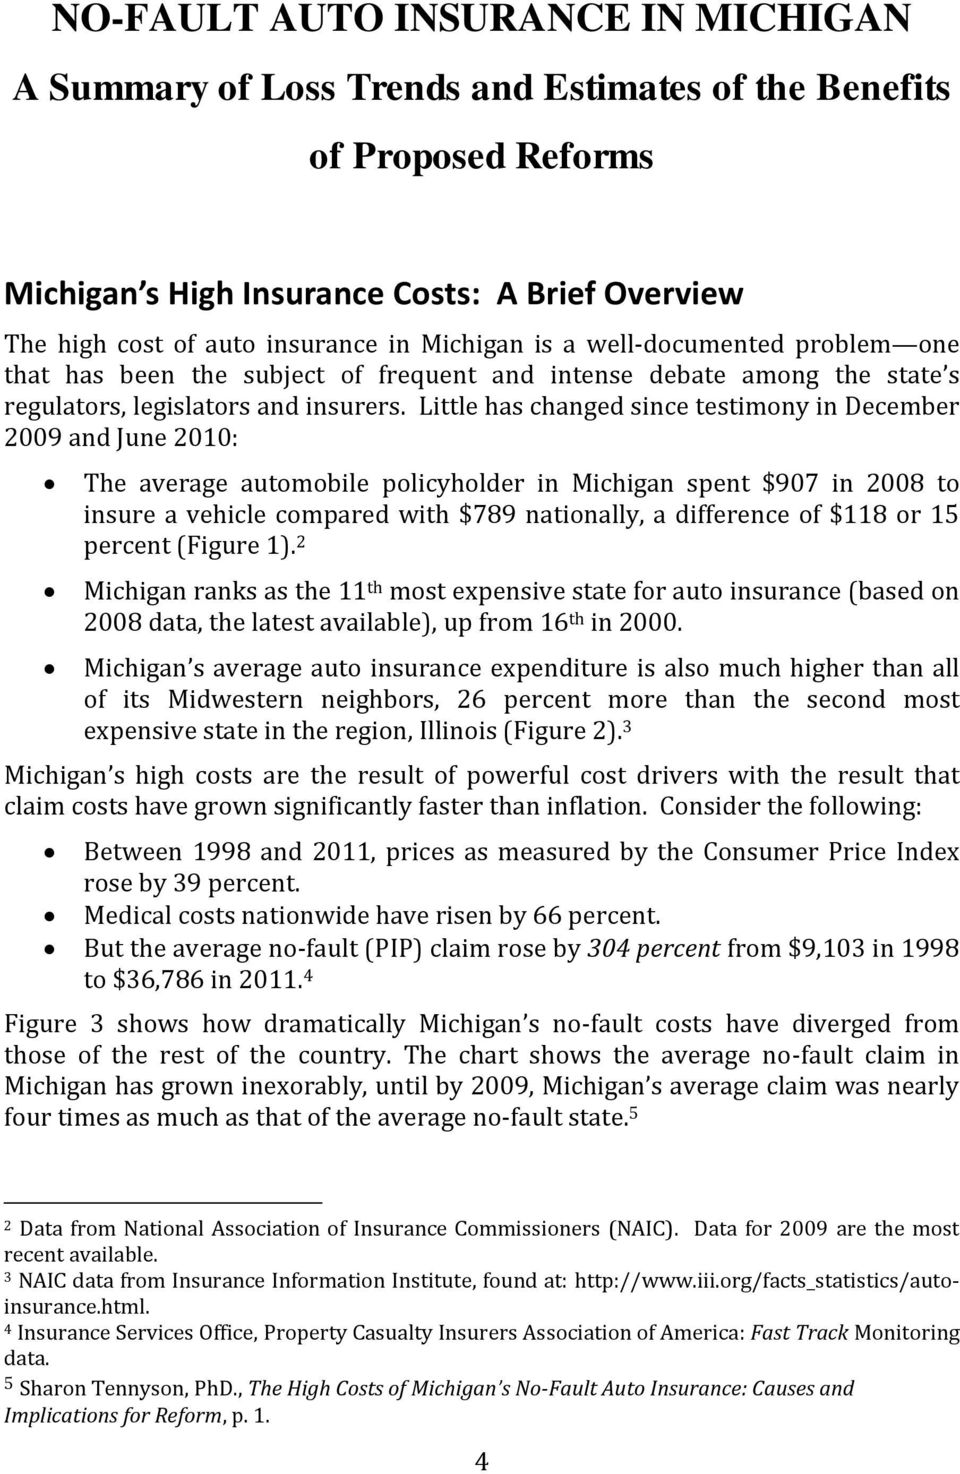 Little has changed since testimony in December 2009 and June 2010: The average automobile policyholder in Michigan spent $907 in 2008 to insure a vehicle compared with $789 nationally, a difference